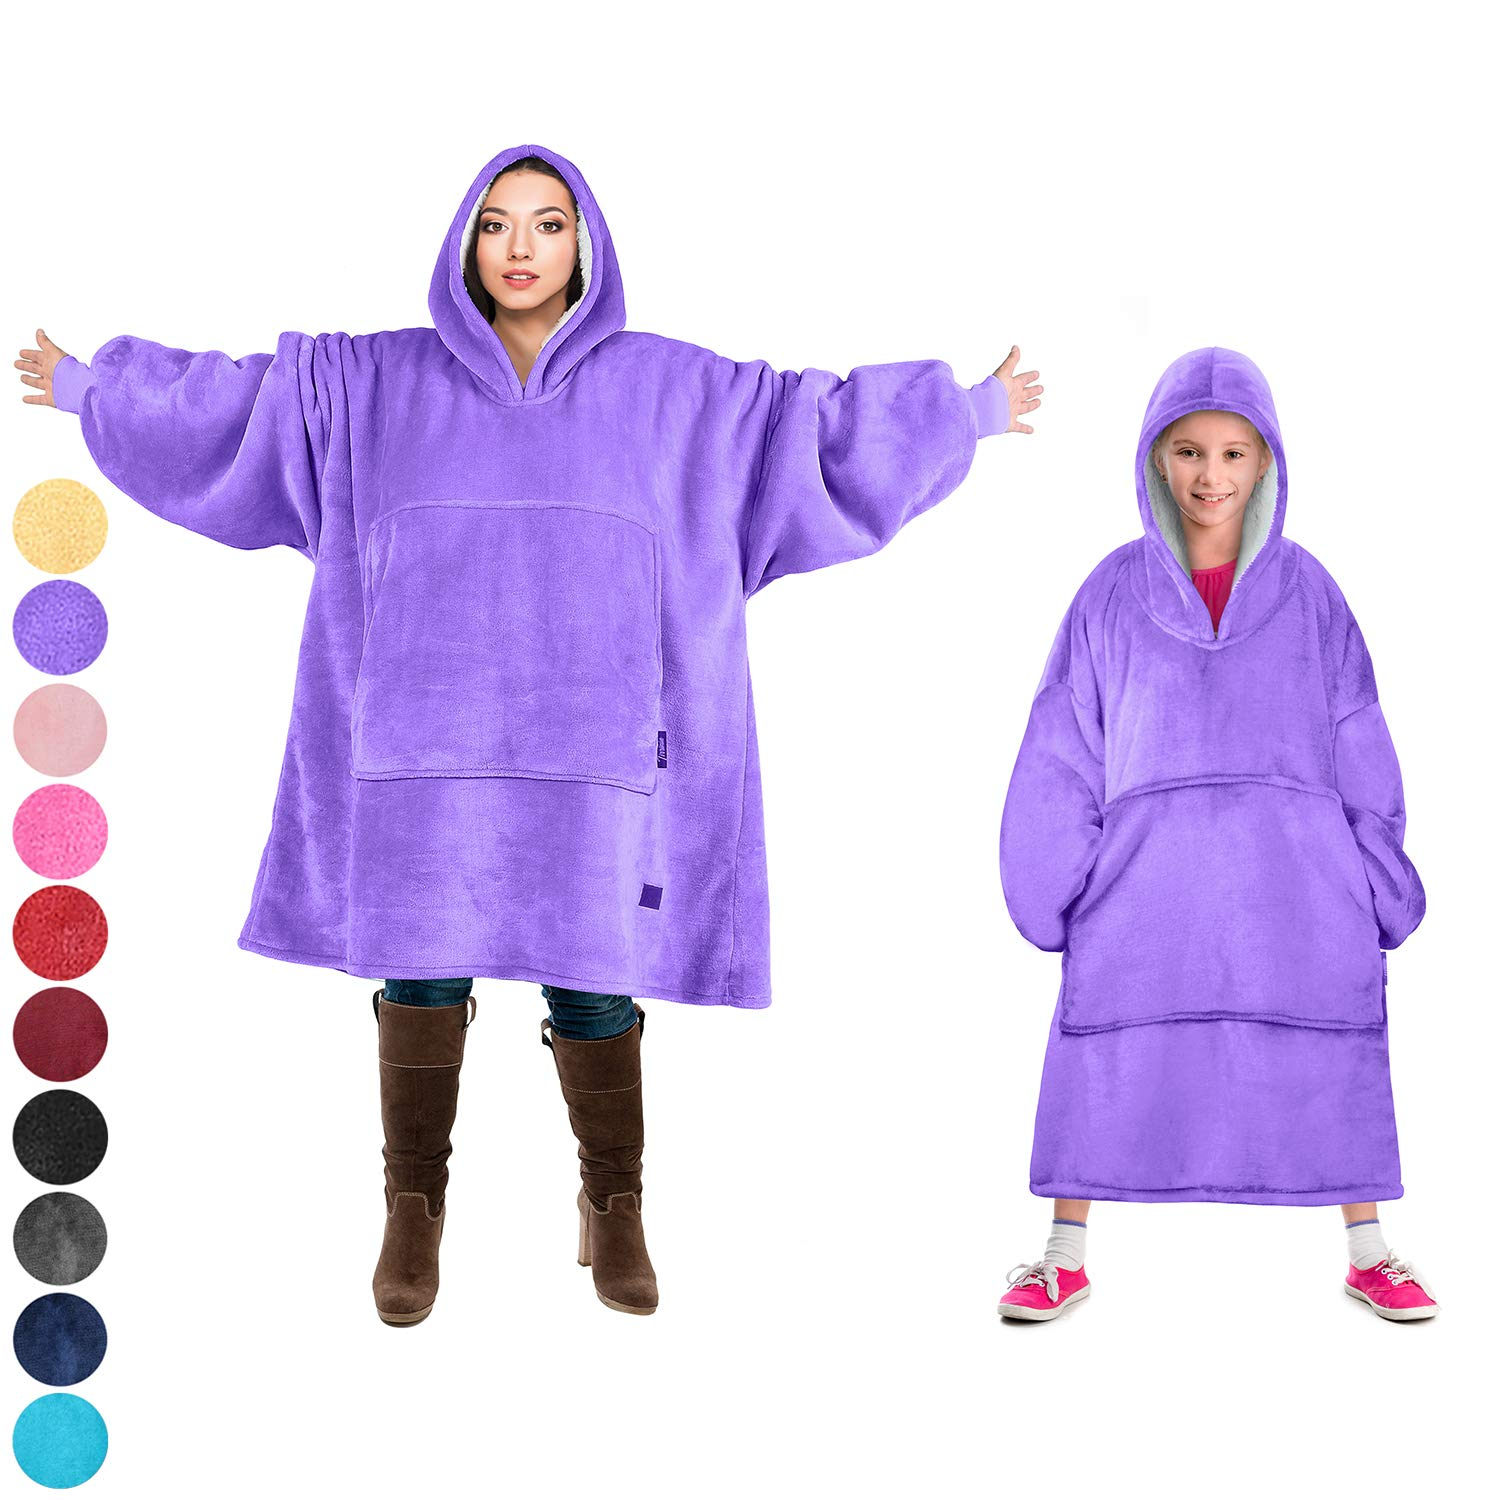 Tirrinia Blanket Sweatshirt, Super Soft Warm Comfortable Sherpa Hoodie with Giant Pocket, for Adults and College Students, Outdoor, Indoor,Reversible, Hood, Oversized, Purple